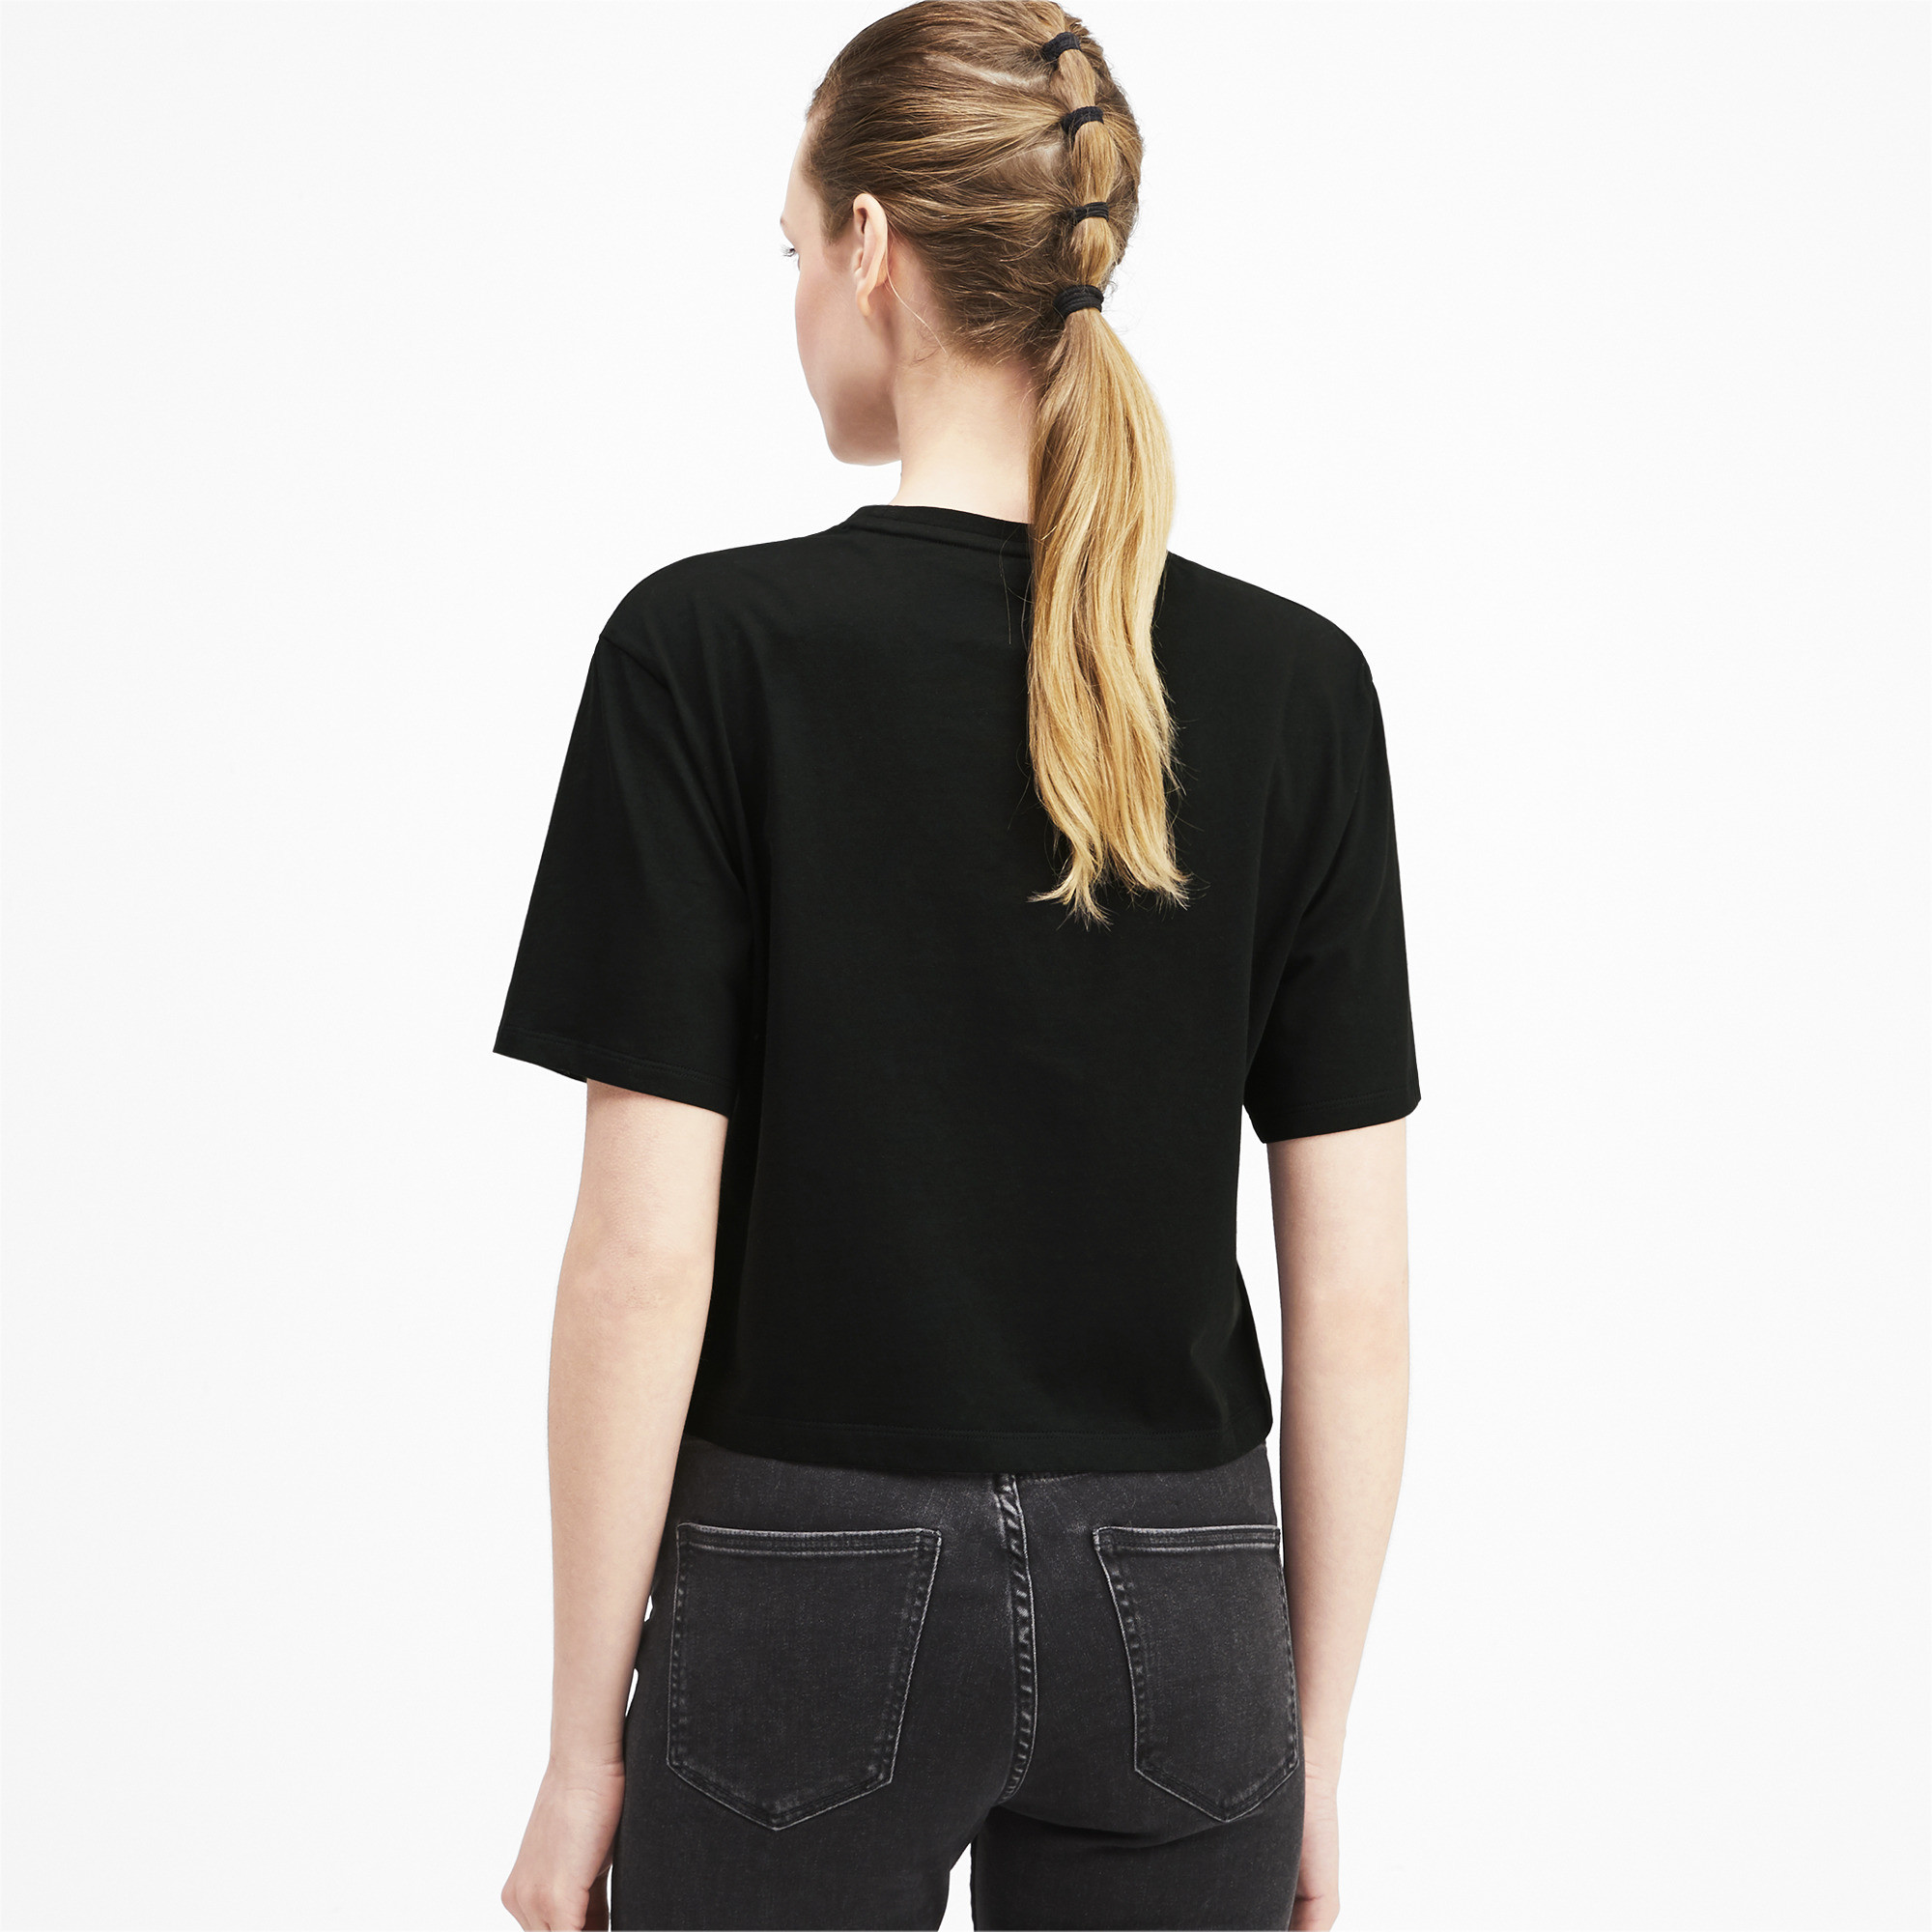 PUMA-Women-039-s-Cropped-Logo-Tee-Women-Crop-Top-Basics thumbnail 15